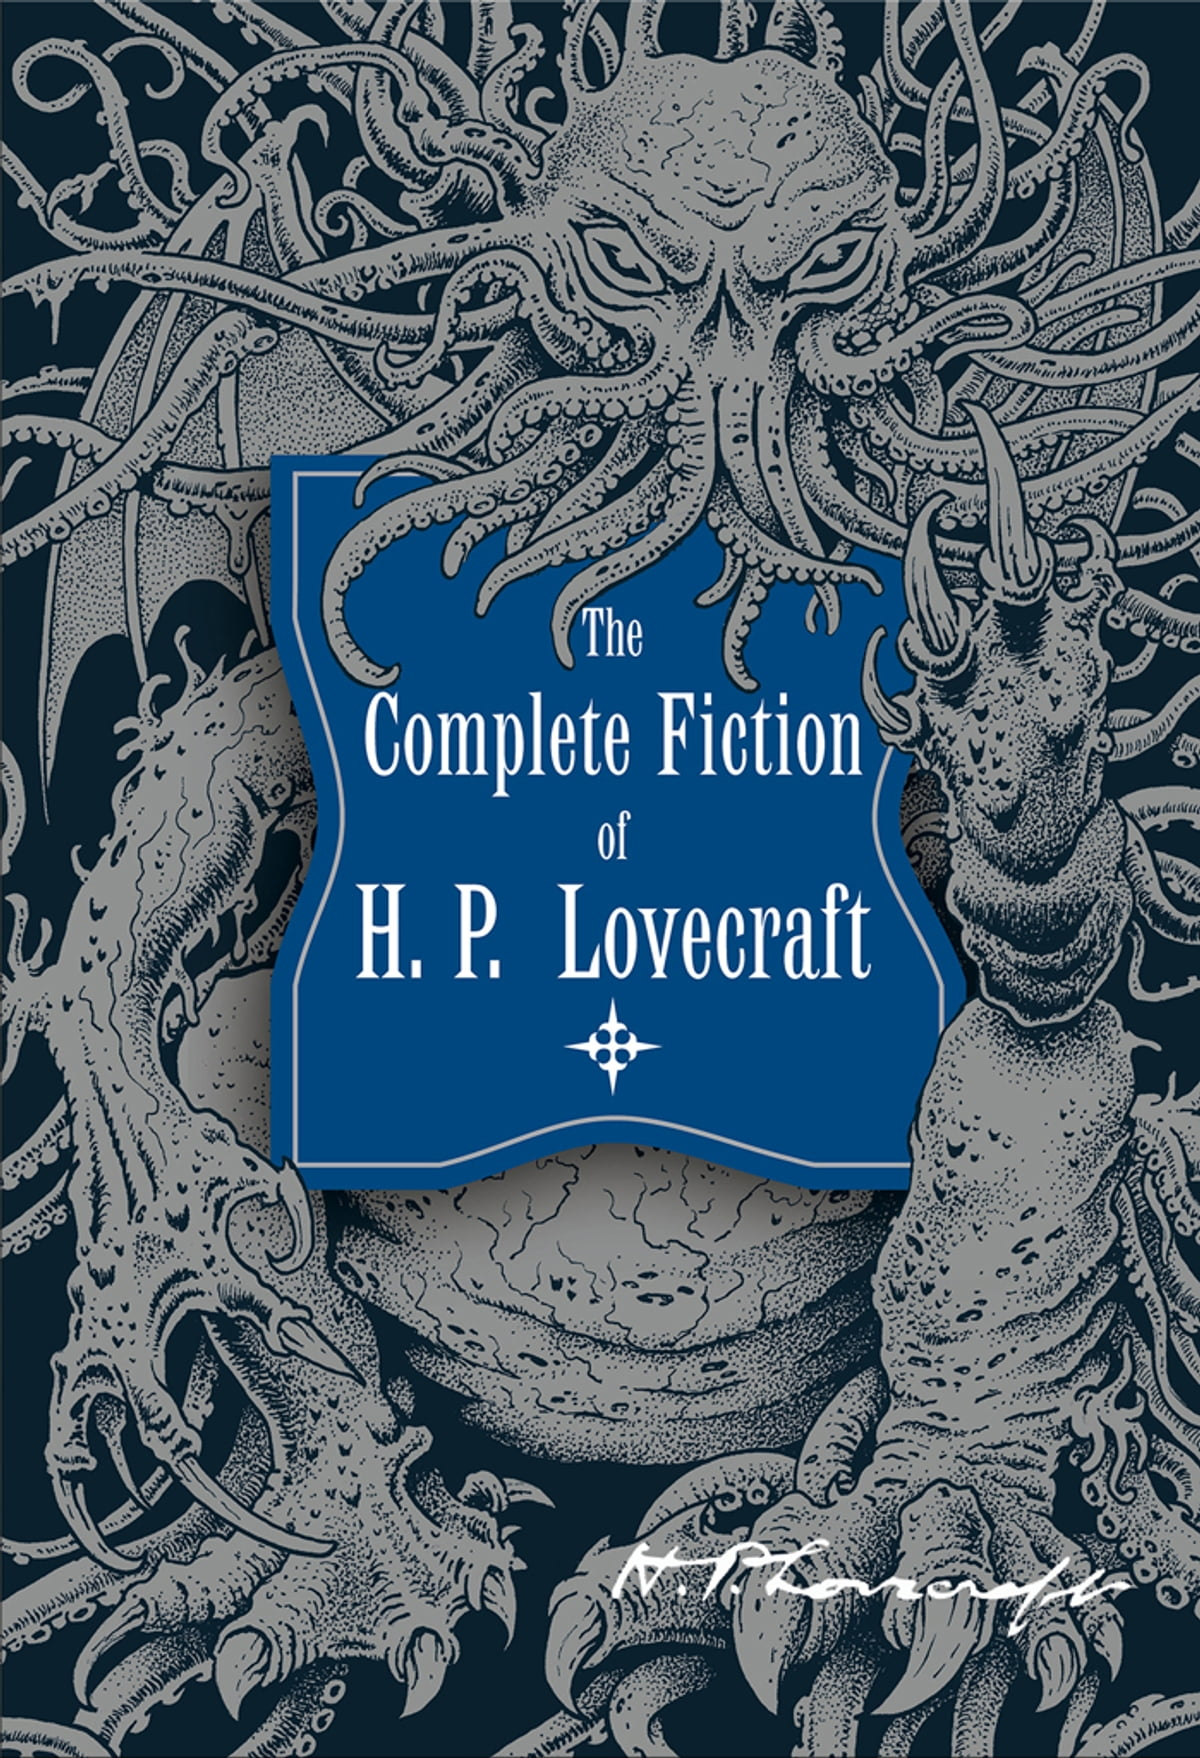 The Complete Fiction of H.P. Lovecraft eBook by H. P. Lovecraft -  9781627885935   Rakuten Kobo